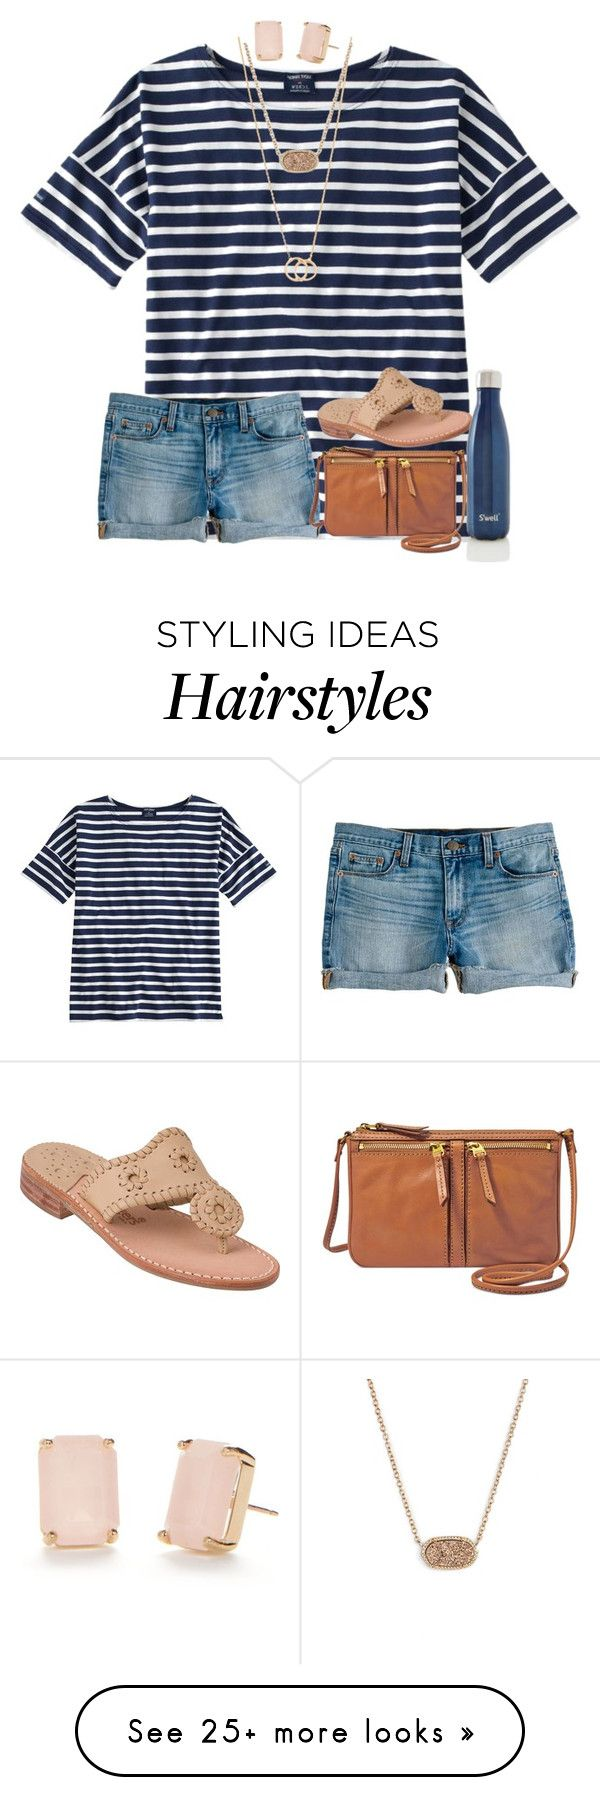 """""""Can't wait for salty hair and tan lines.. But I still want it to snow"""" by preppycarolinacutie on Polyvore featuring Saint James, J.Crew, FOSSIL, Jack Rogers, S'well, Dogeared, Kendra Scott and Kate Spade"""